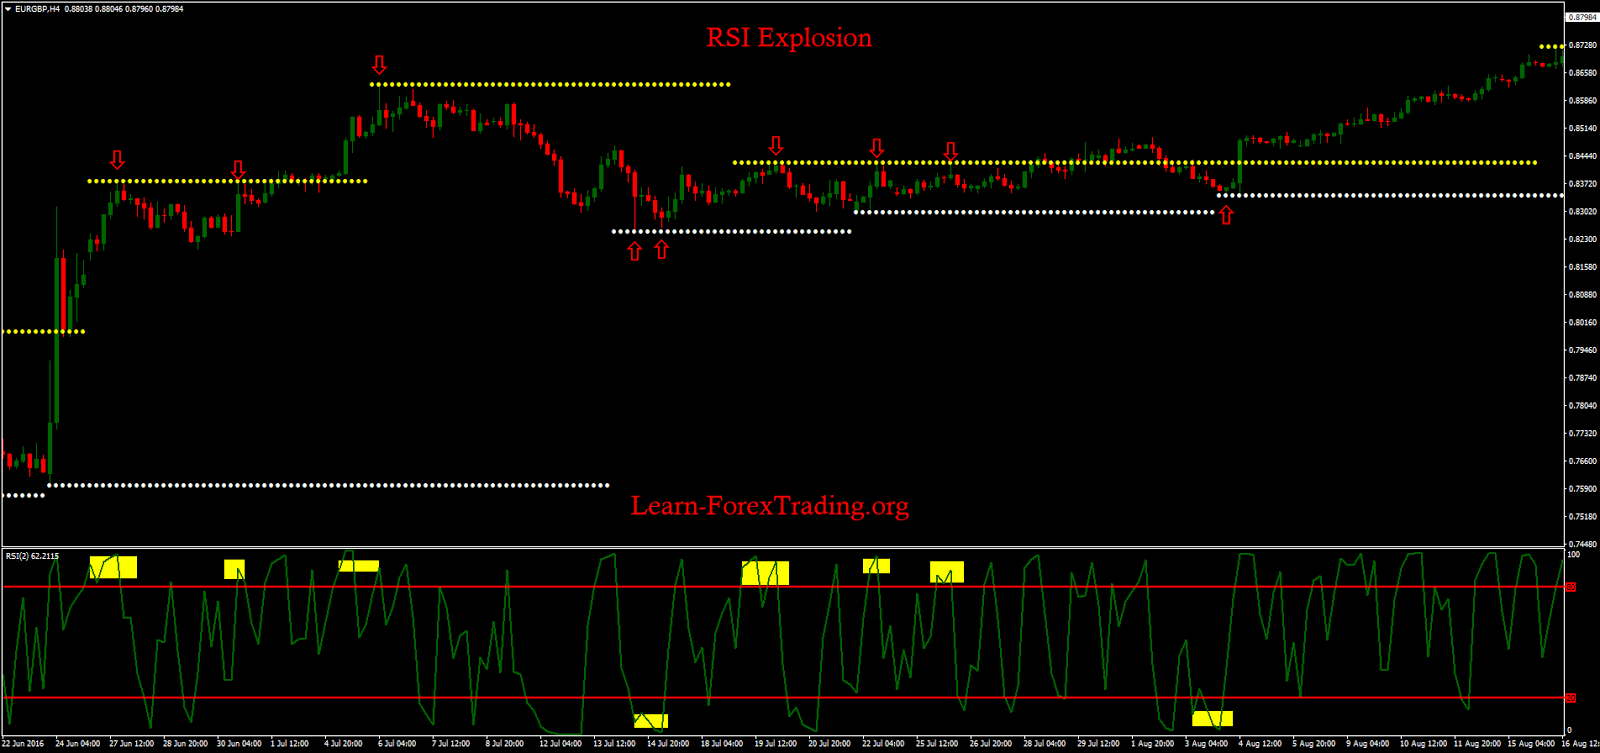 RSI Explosion - Learn Forex Trading